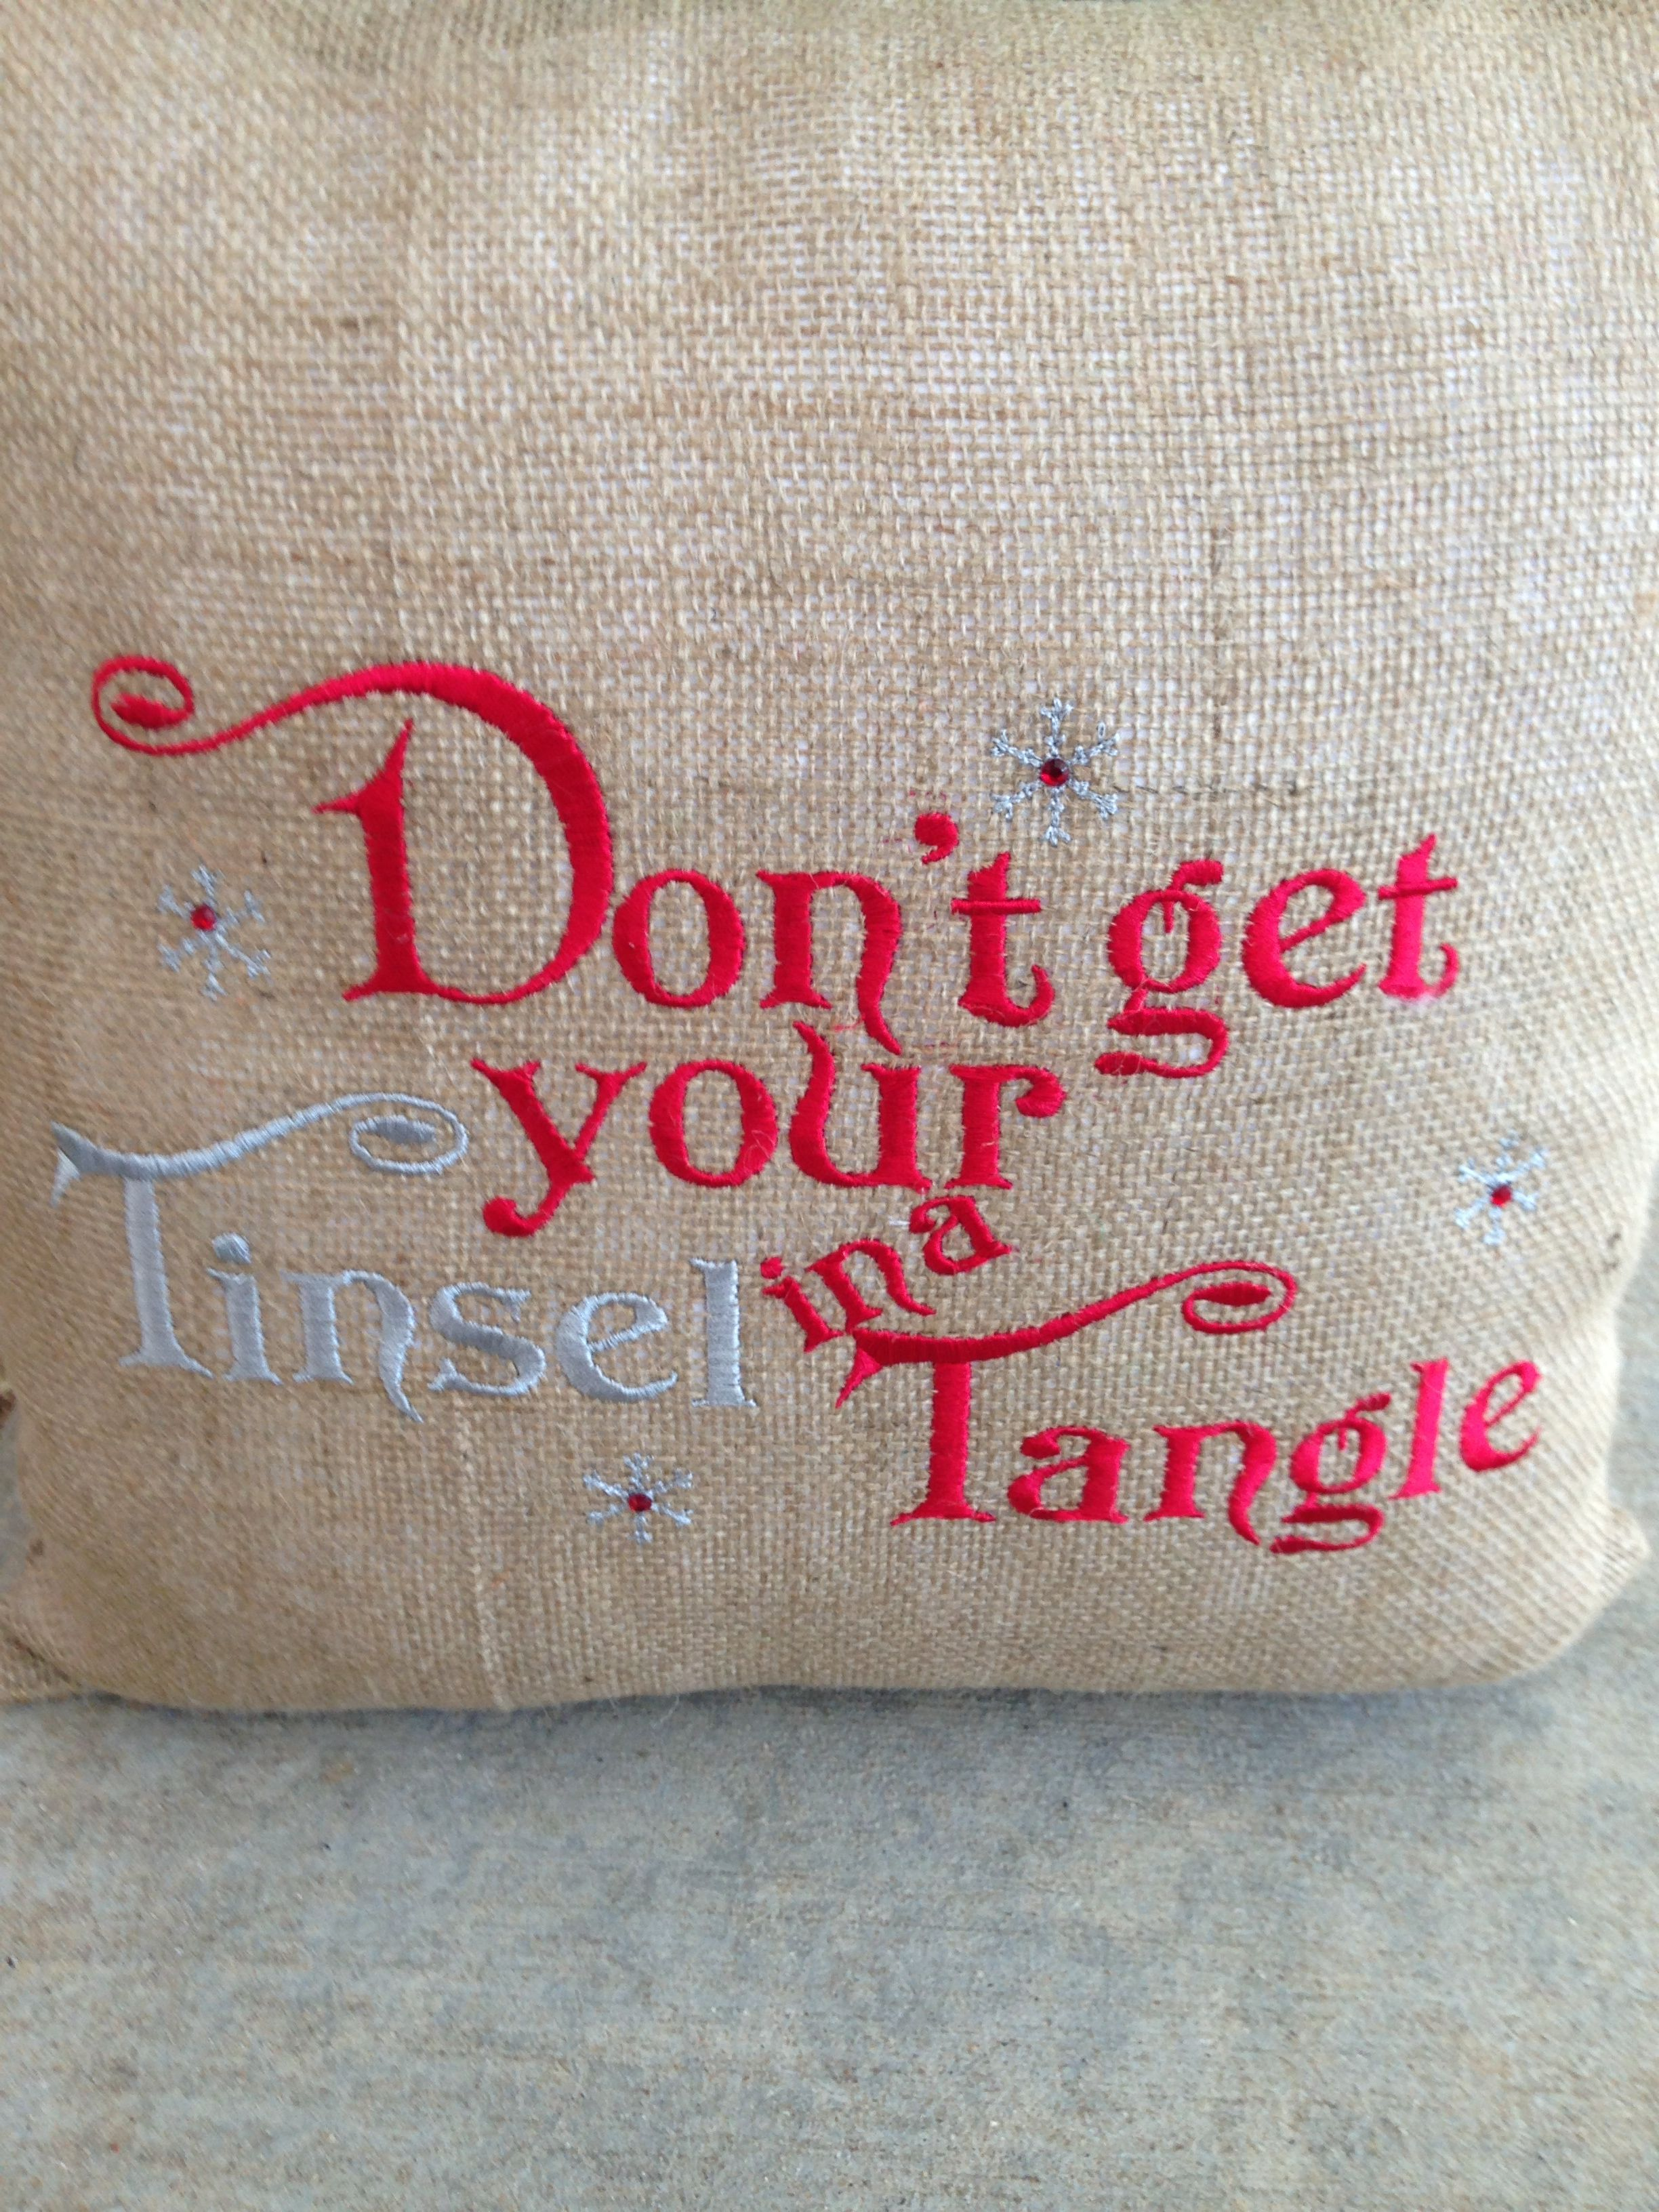 Don T Get Your Tinsel In A Tangle Burlap Pillow Email Me At Kgill Aircanopy Net If Interested Burlap Pillows Burlap Burlap Crafts